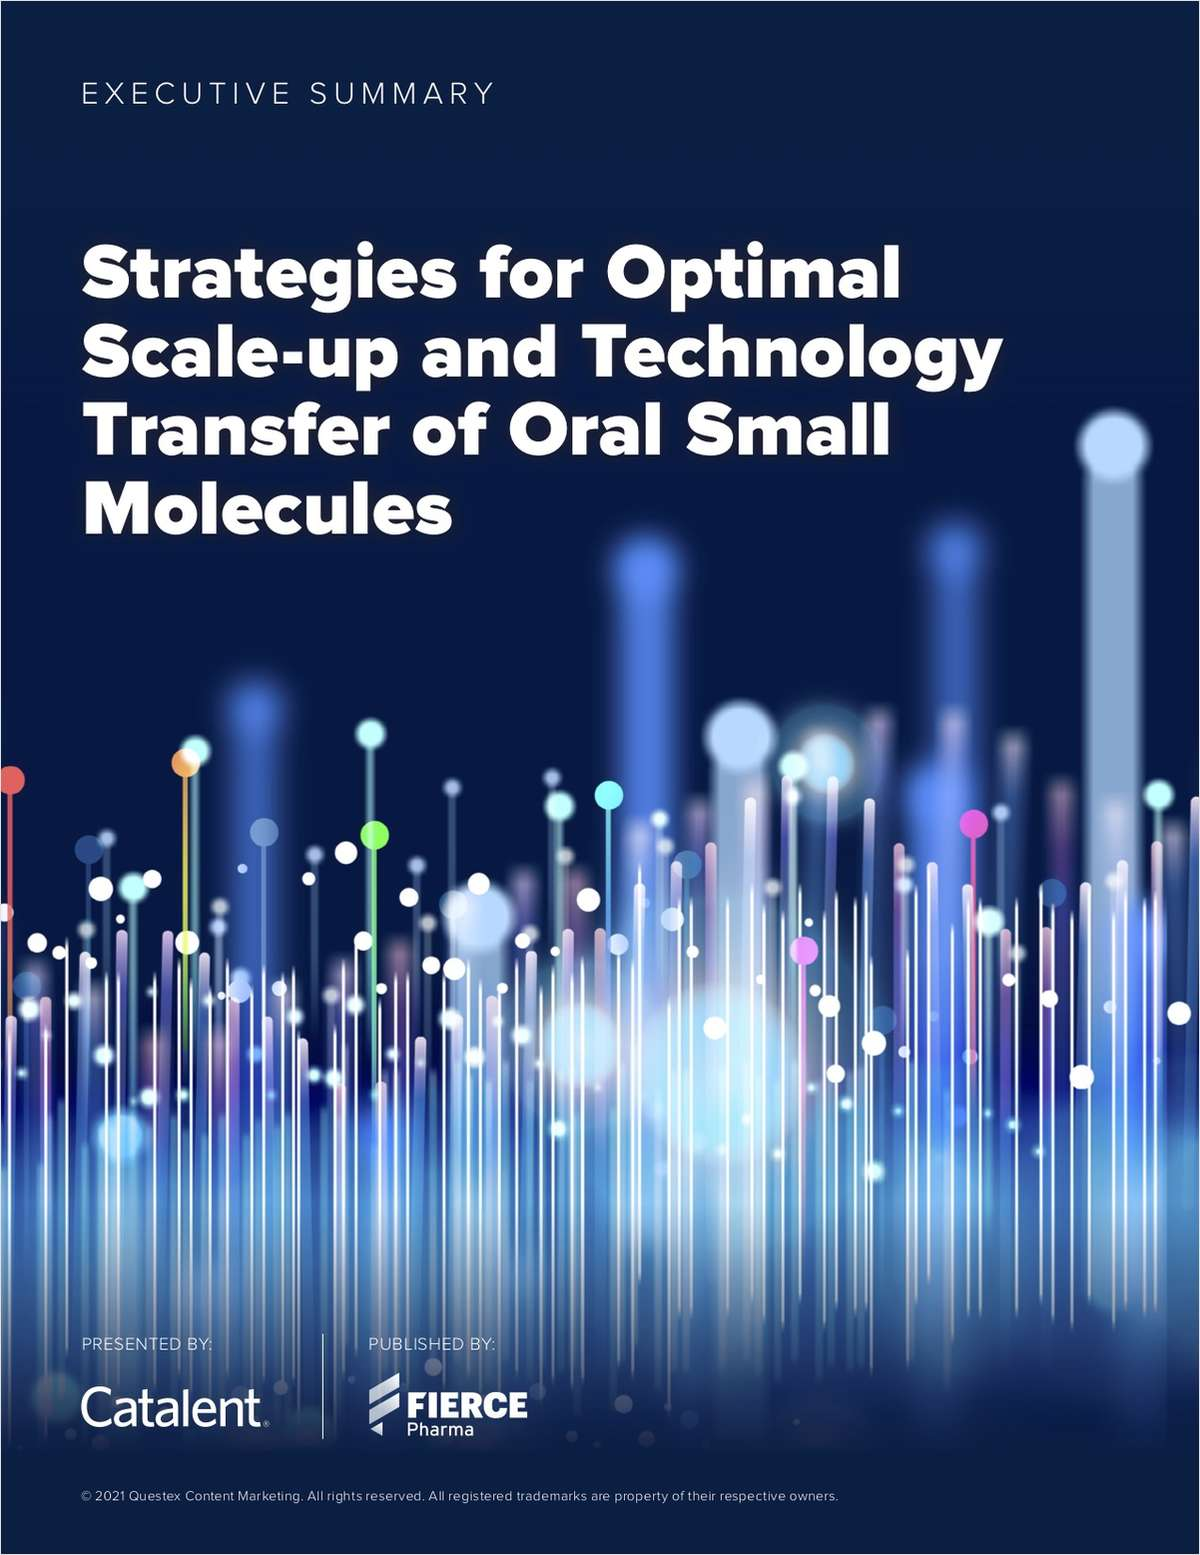 Strategies for Optimal Scale-up and Technology Transfer of Oral Small Molecules